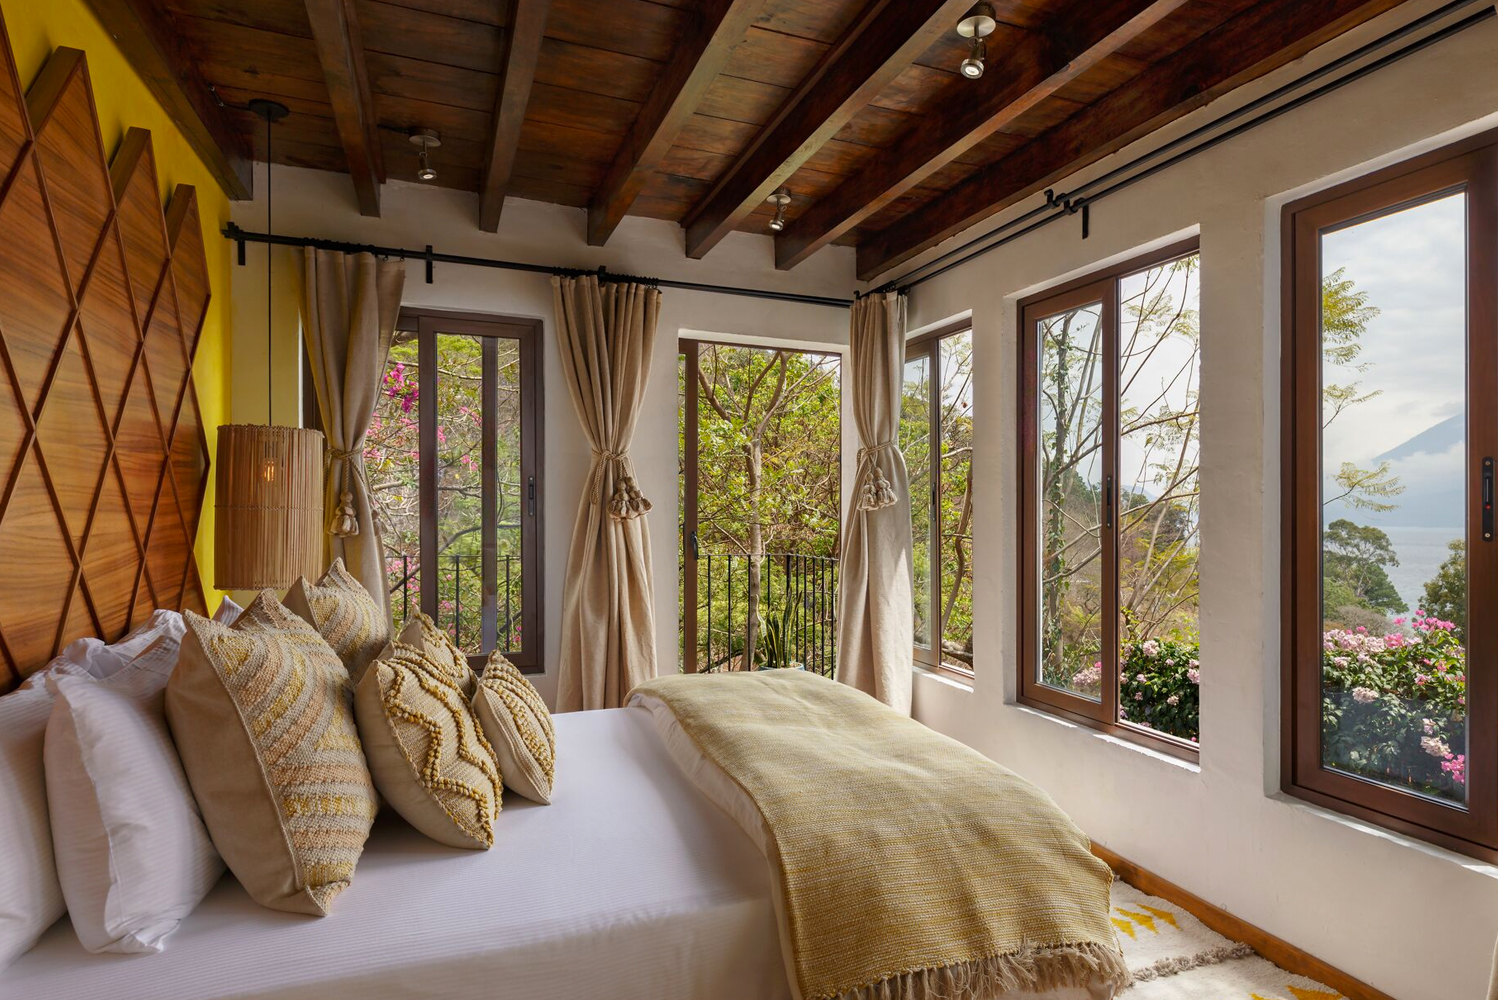 Casa Palopó, a property located in Guatemala, completed the addition of six new rooms and suites, bringing the total room count to 15.